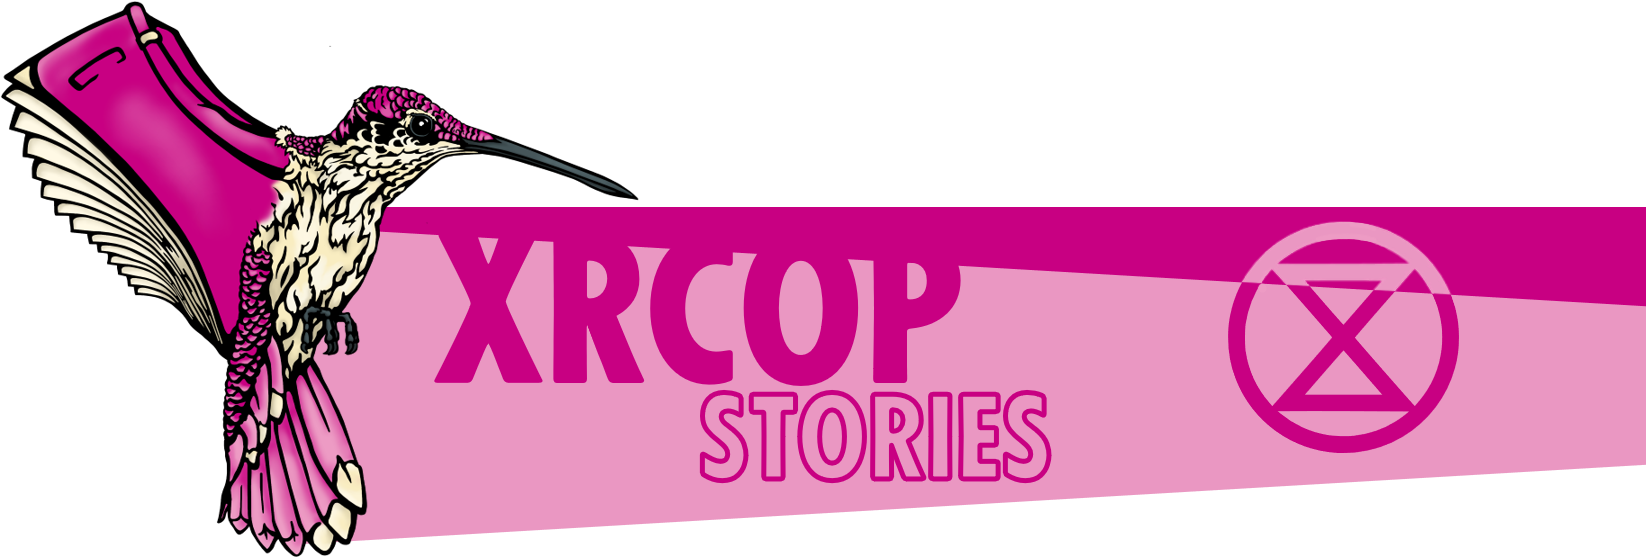 image for article xrcop: Rebels build relationships during XR COP's global conversations